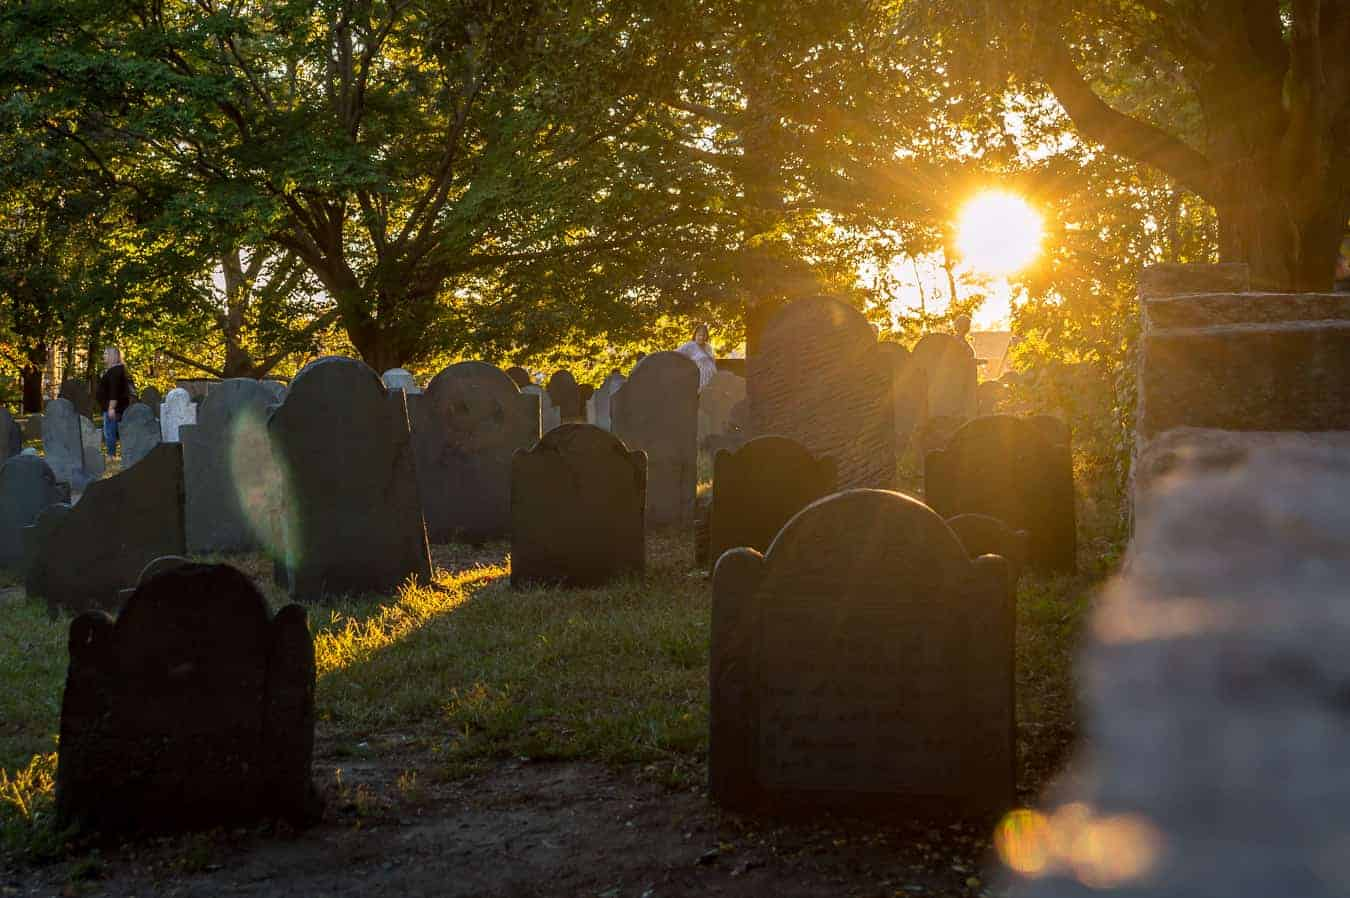 October in Salem Ma - evening light shines onto old gravestones under low trees